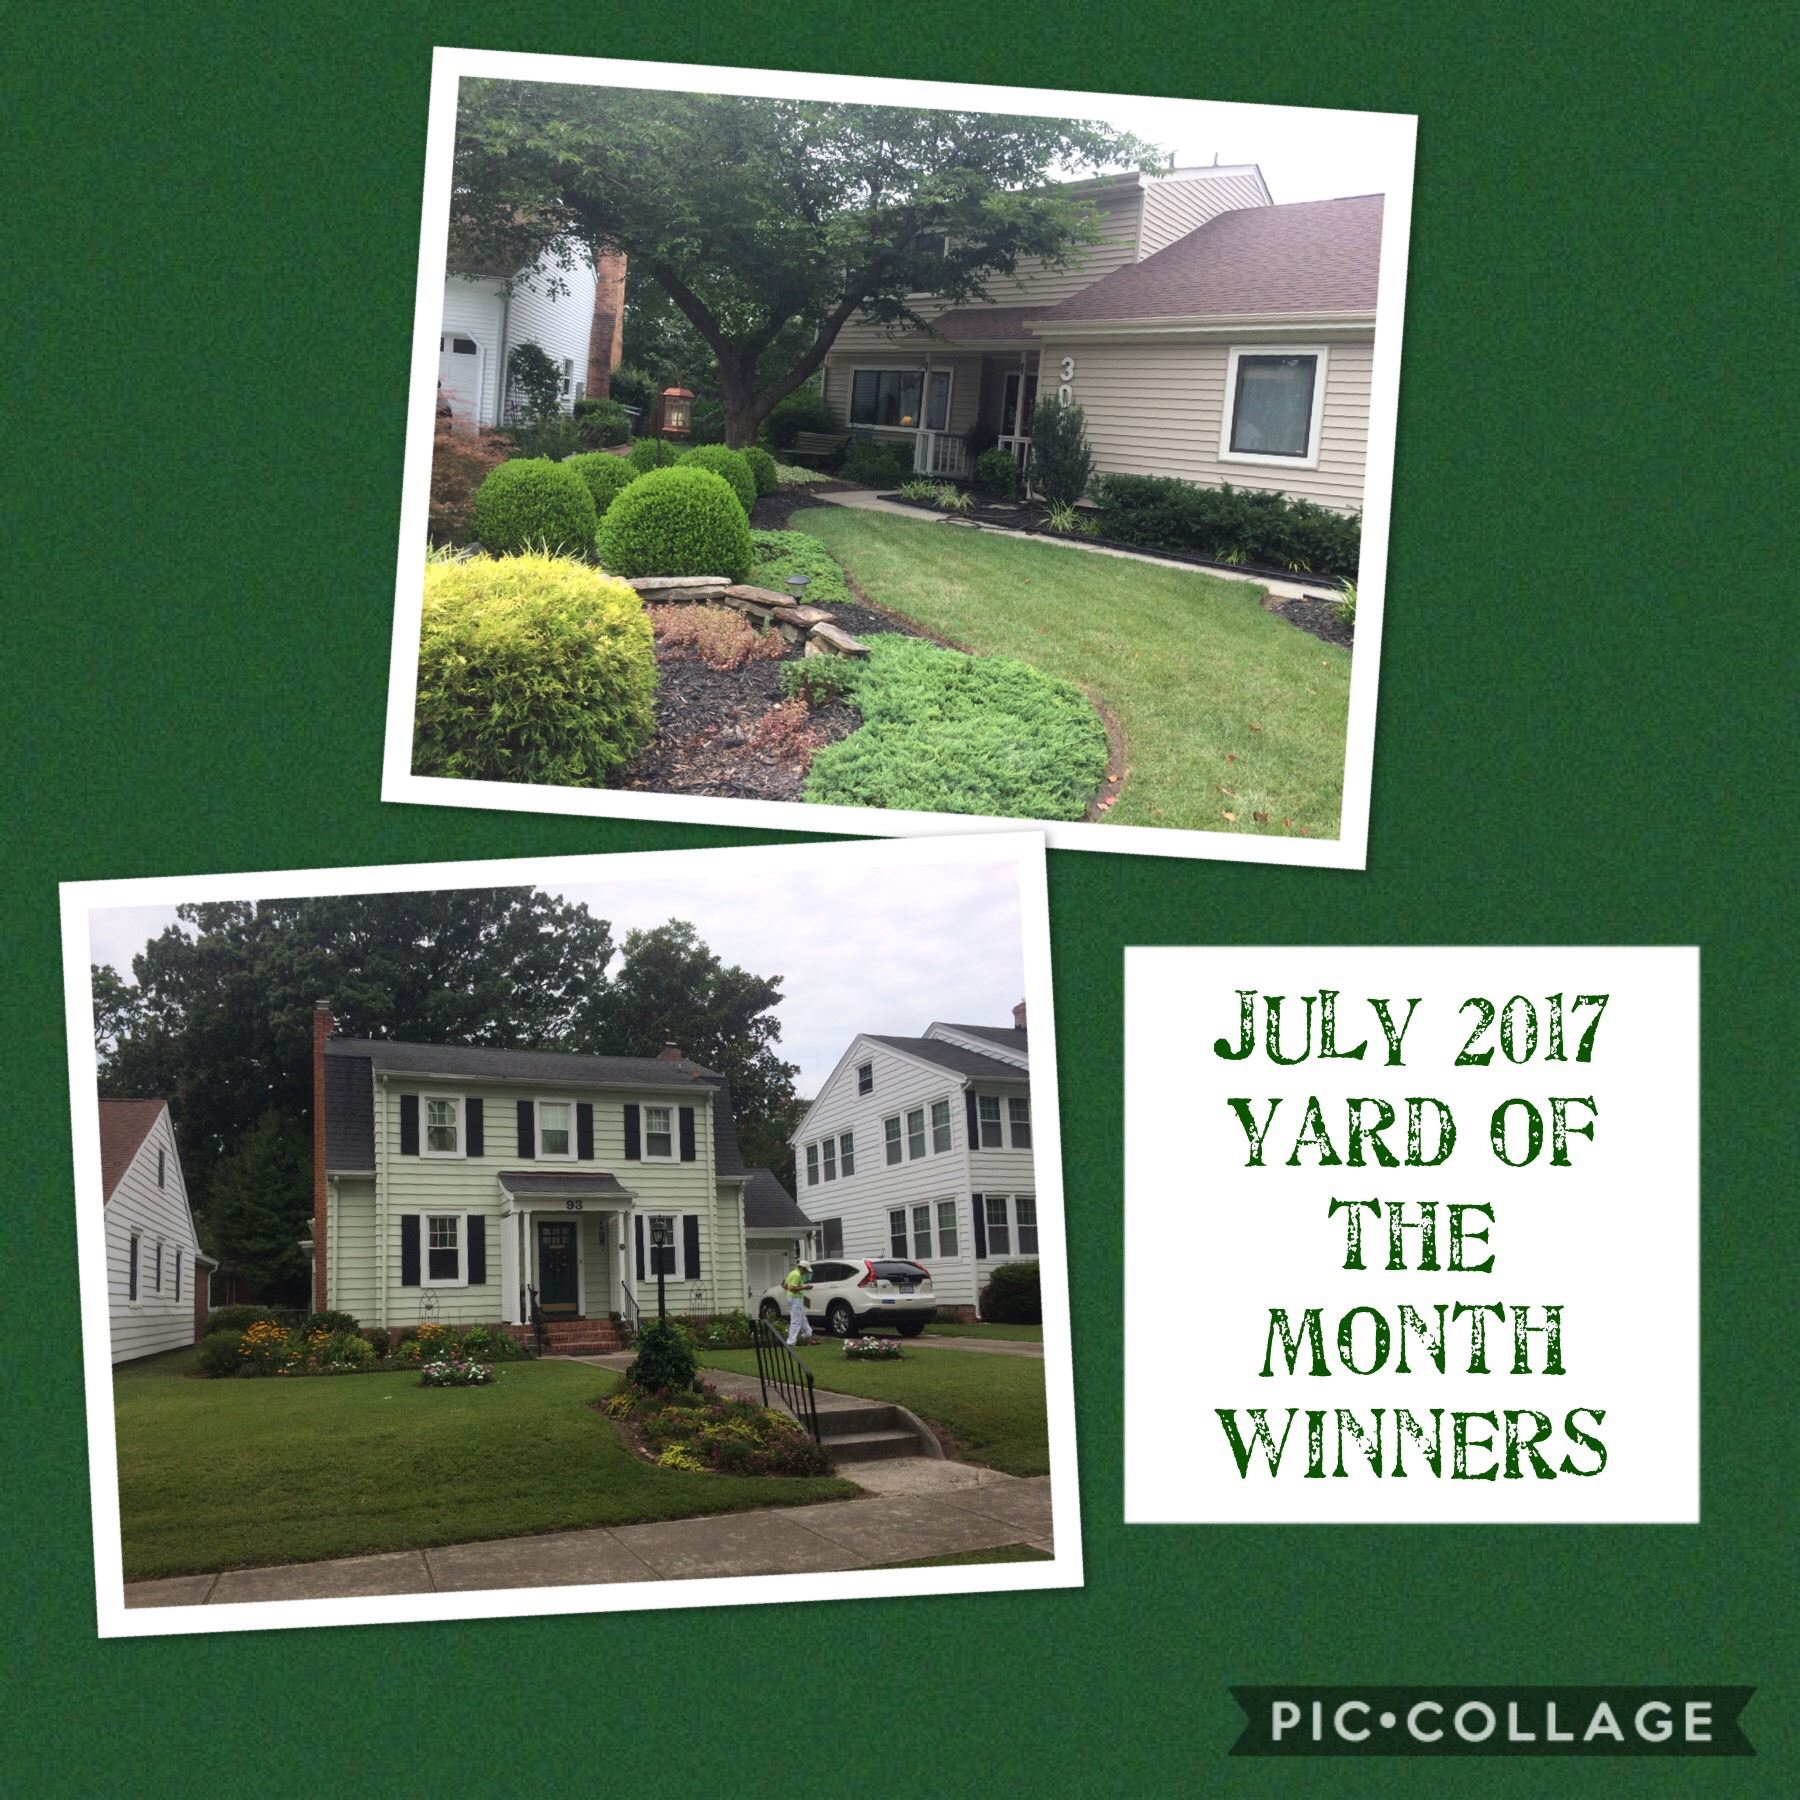 July 2017 Winners Yards Contest Beautification Committee Hampton Clean City Commission